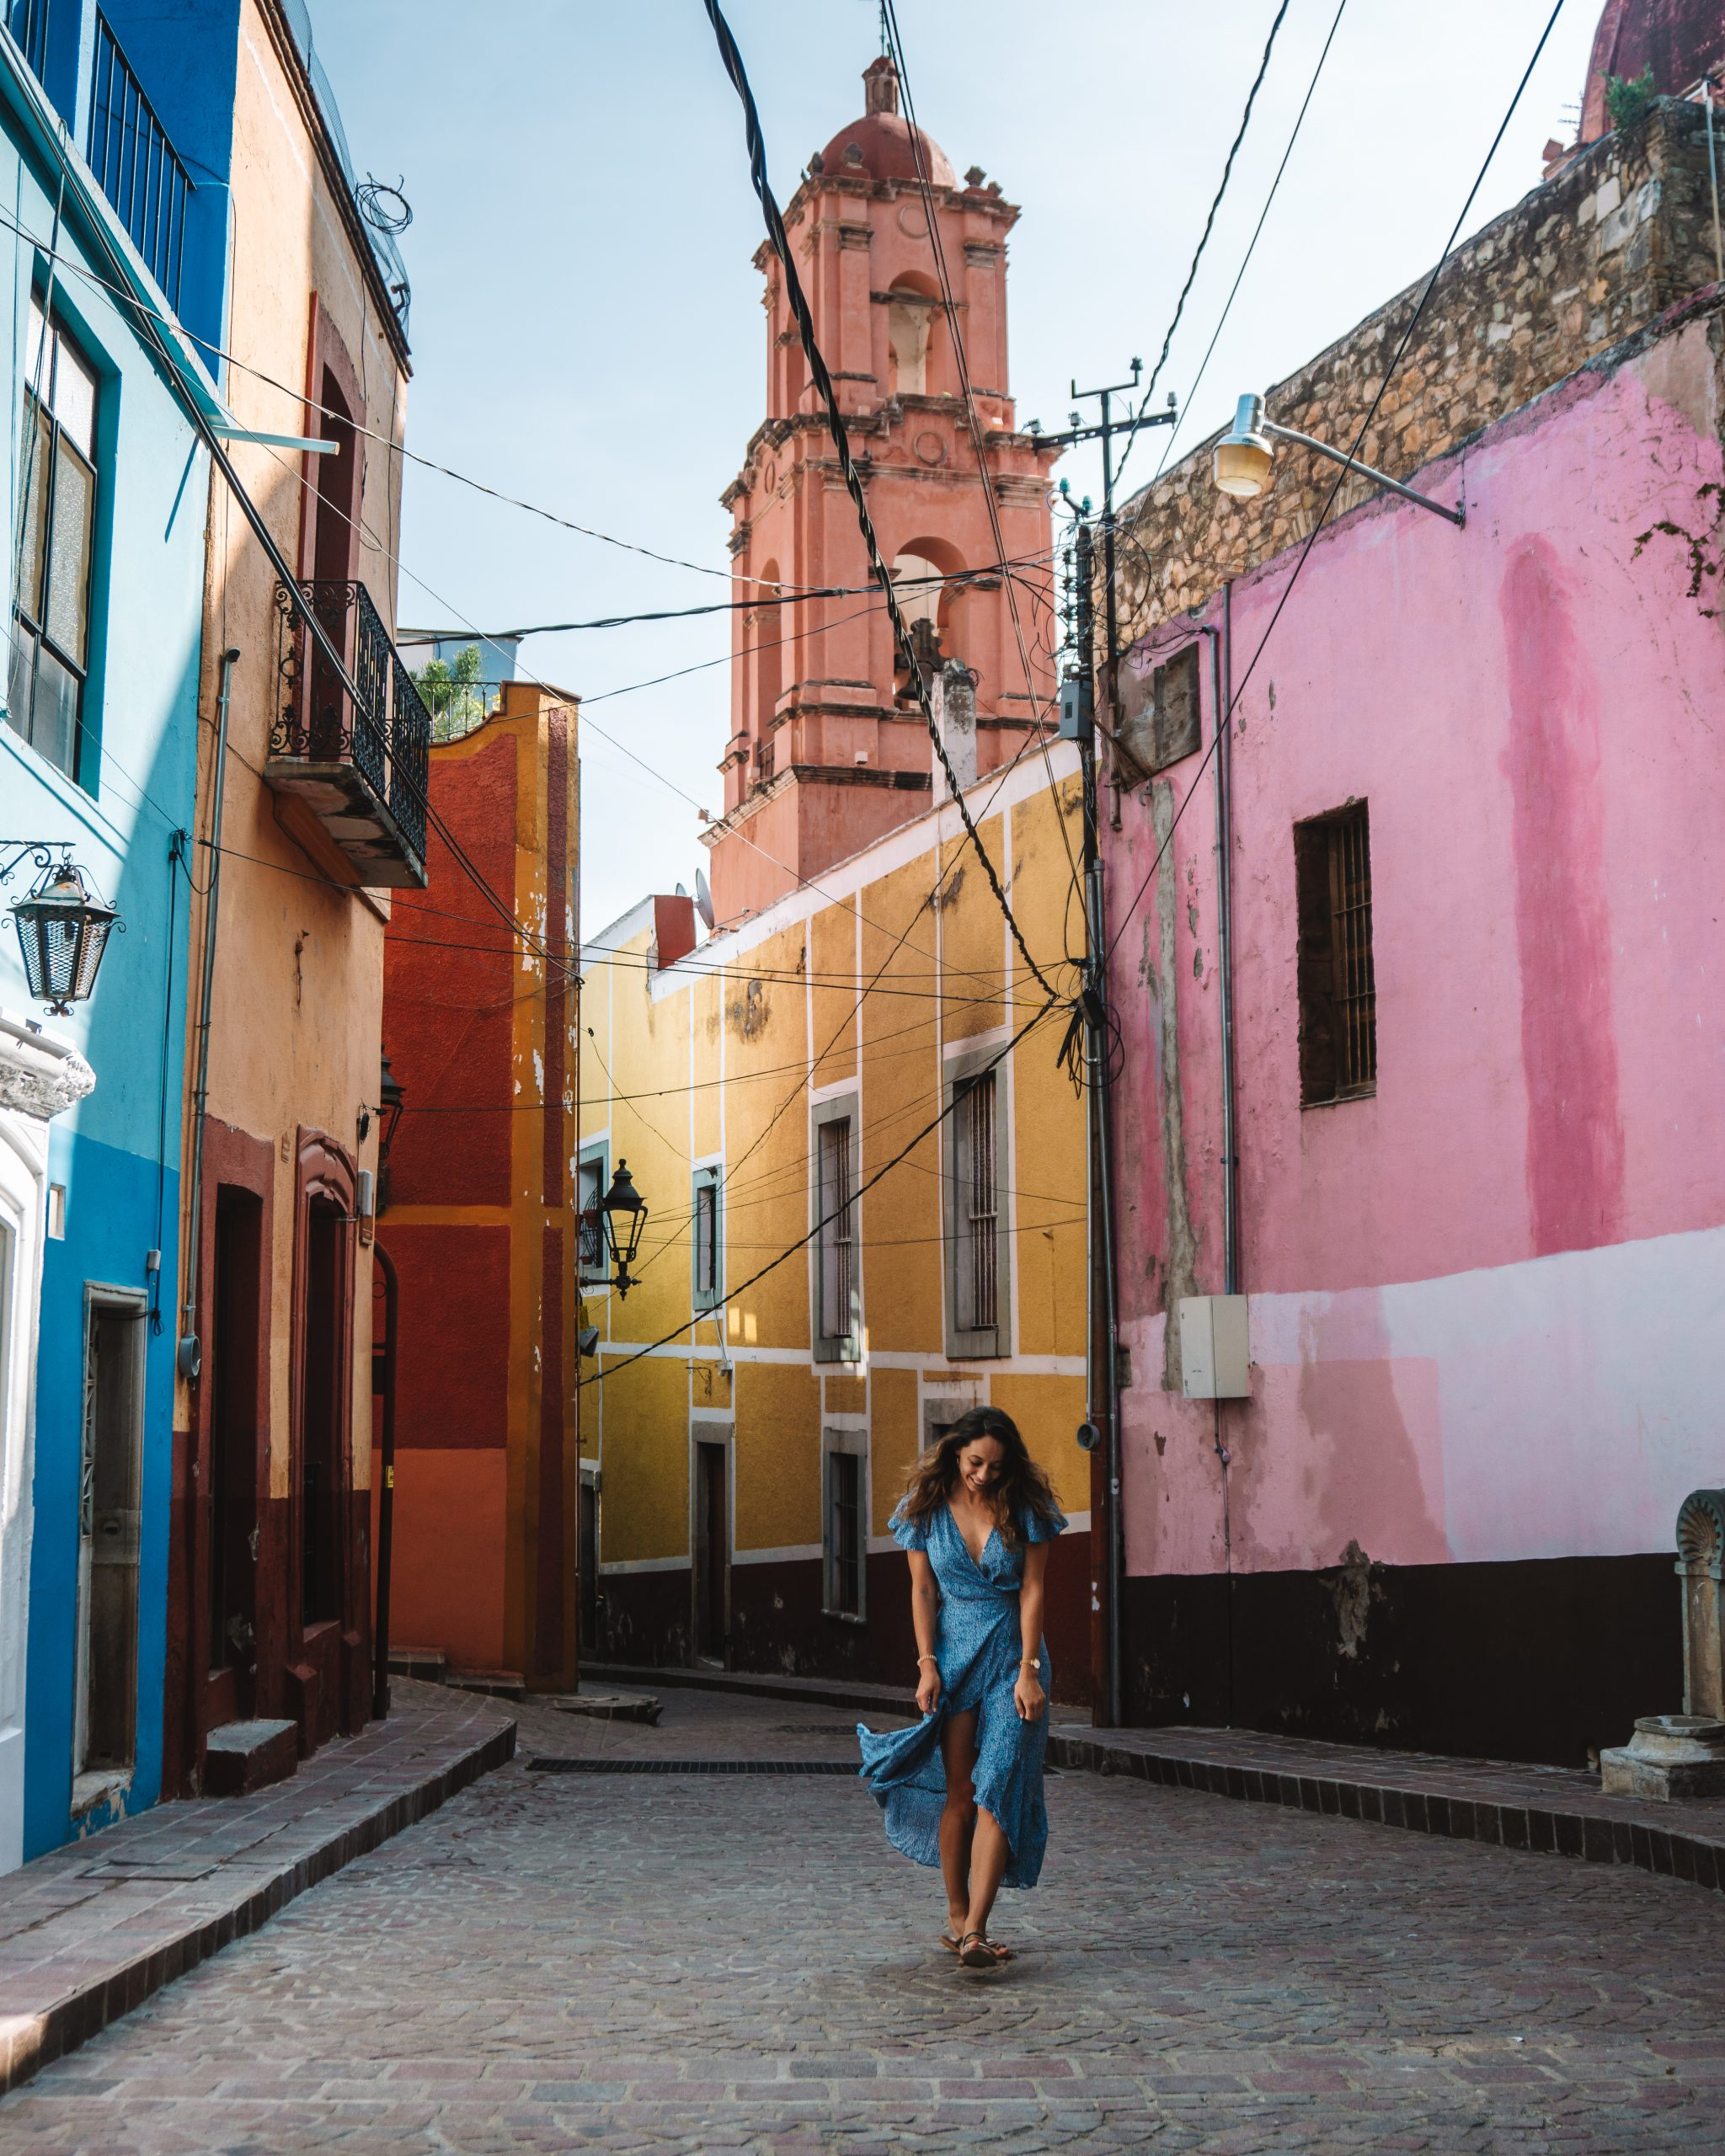 Girl in blue dress in Guanajuato Mexico